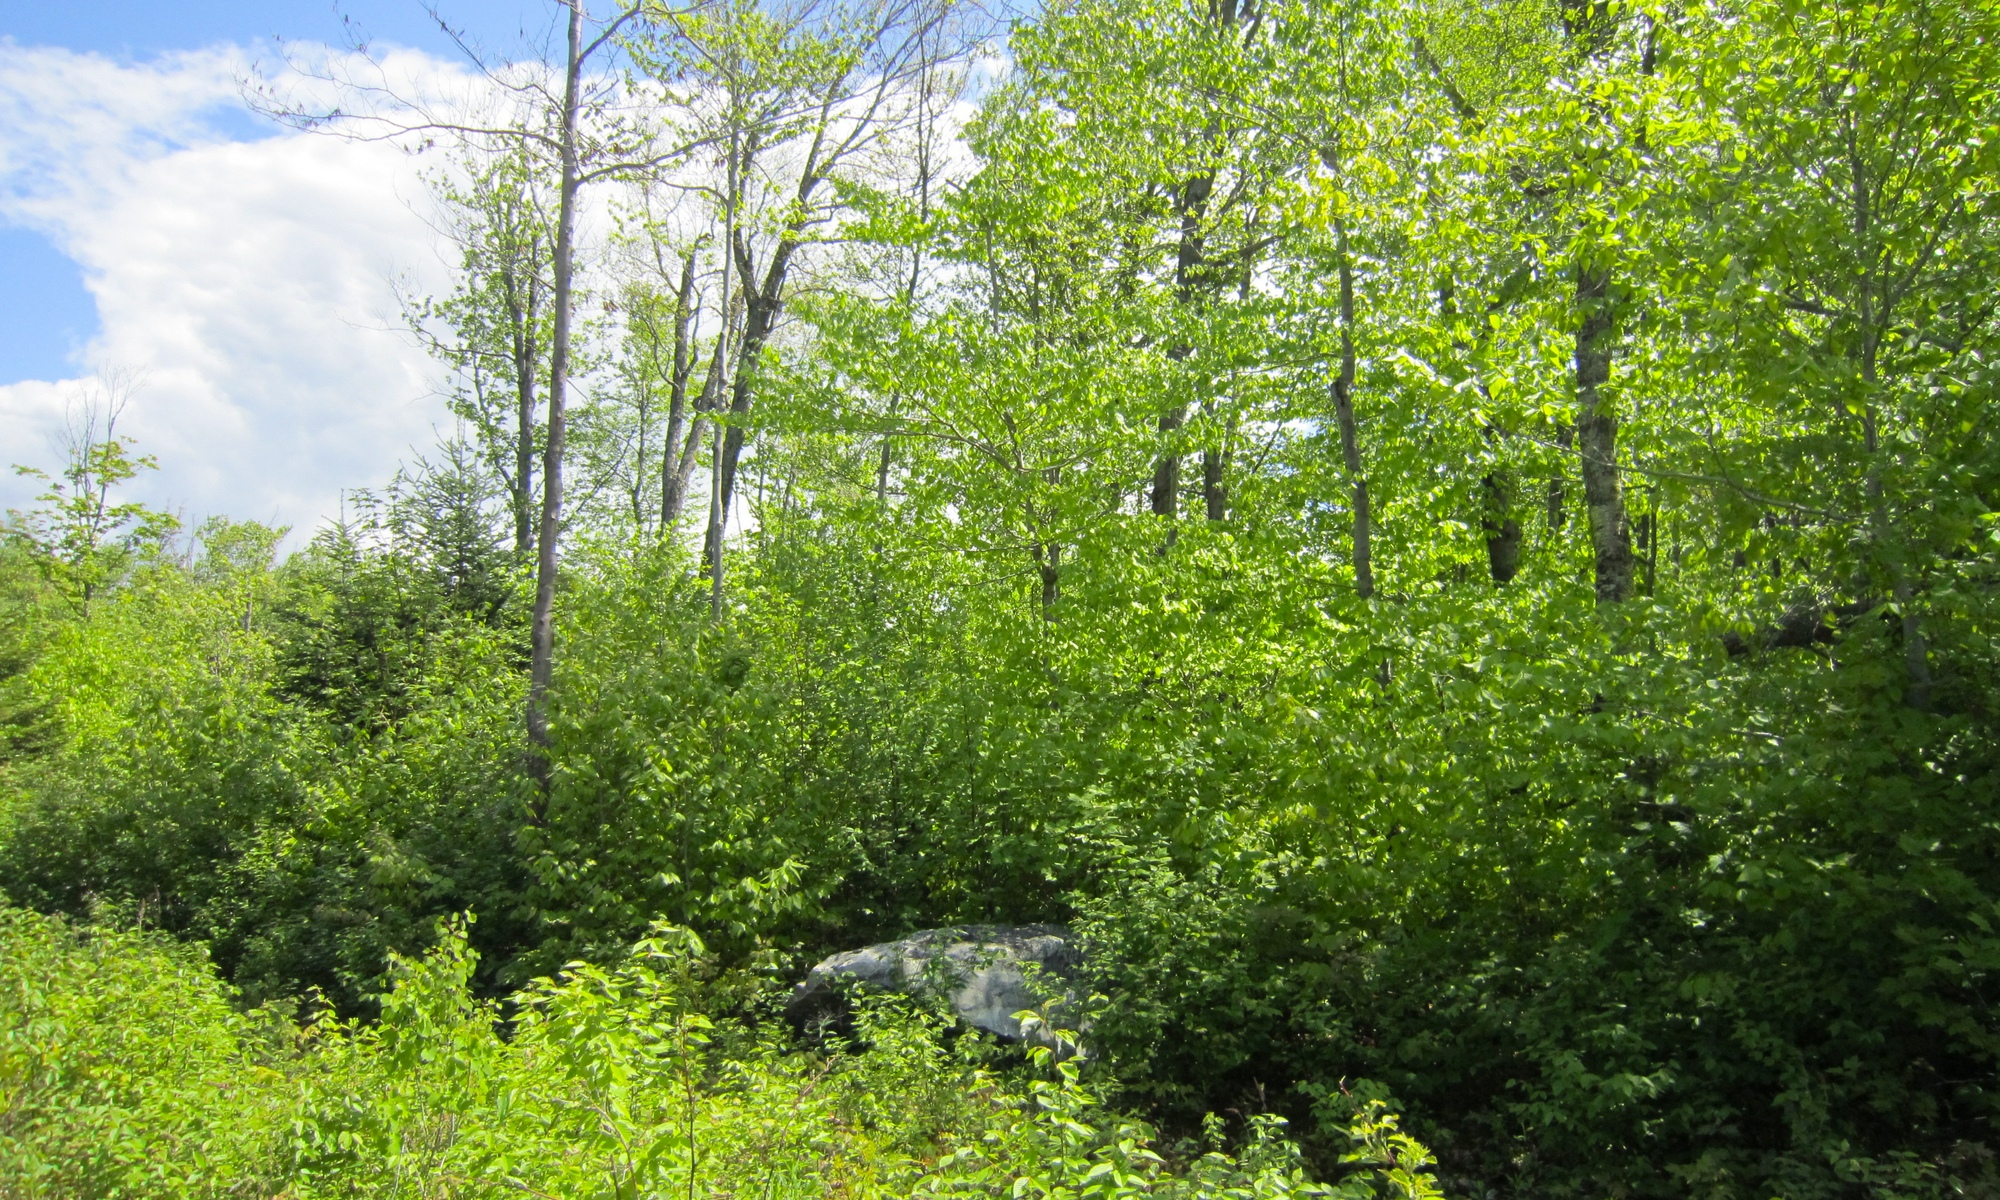 Land for Sale at Candeleros Court Lot 6 Ludlow, Vermont 05149 United States